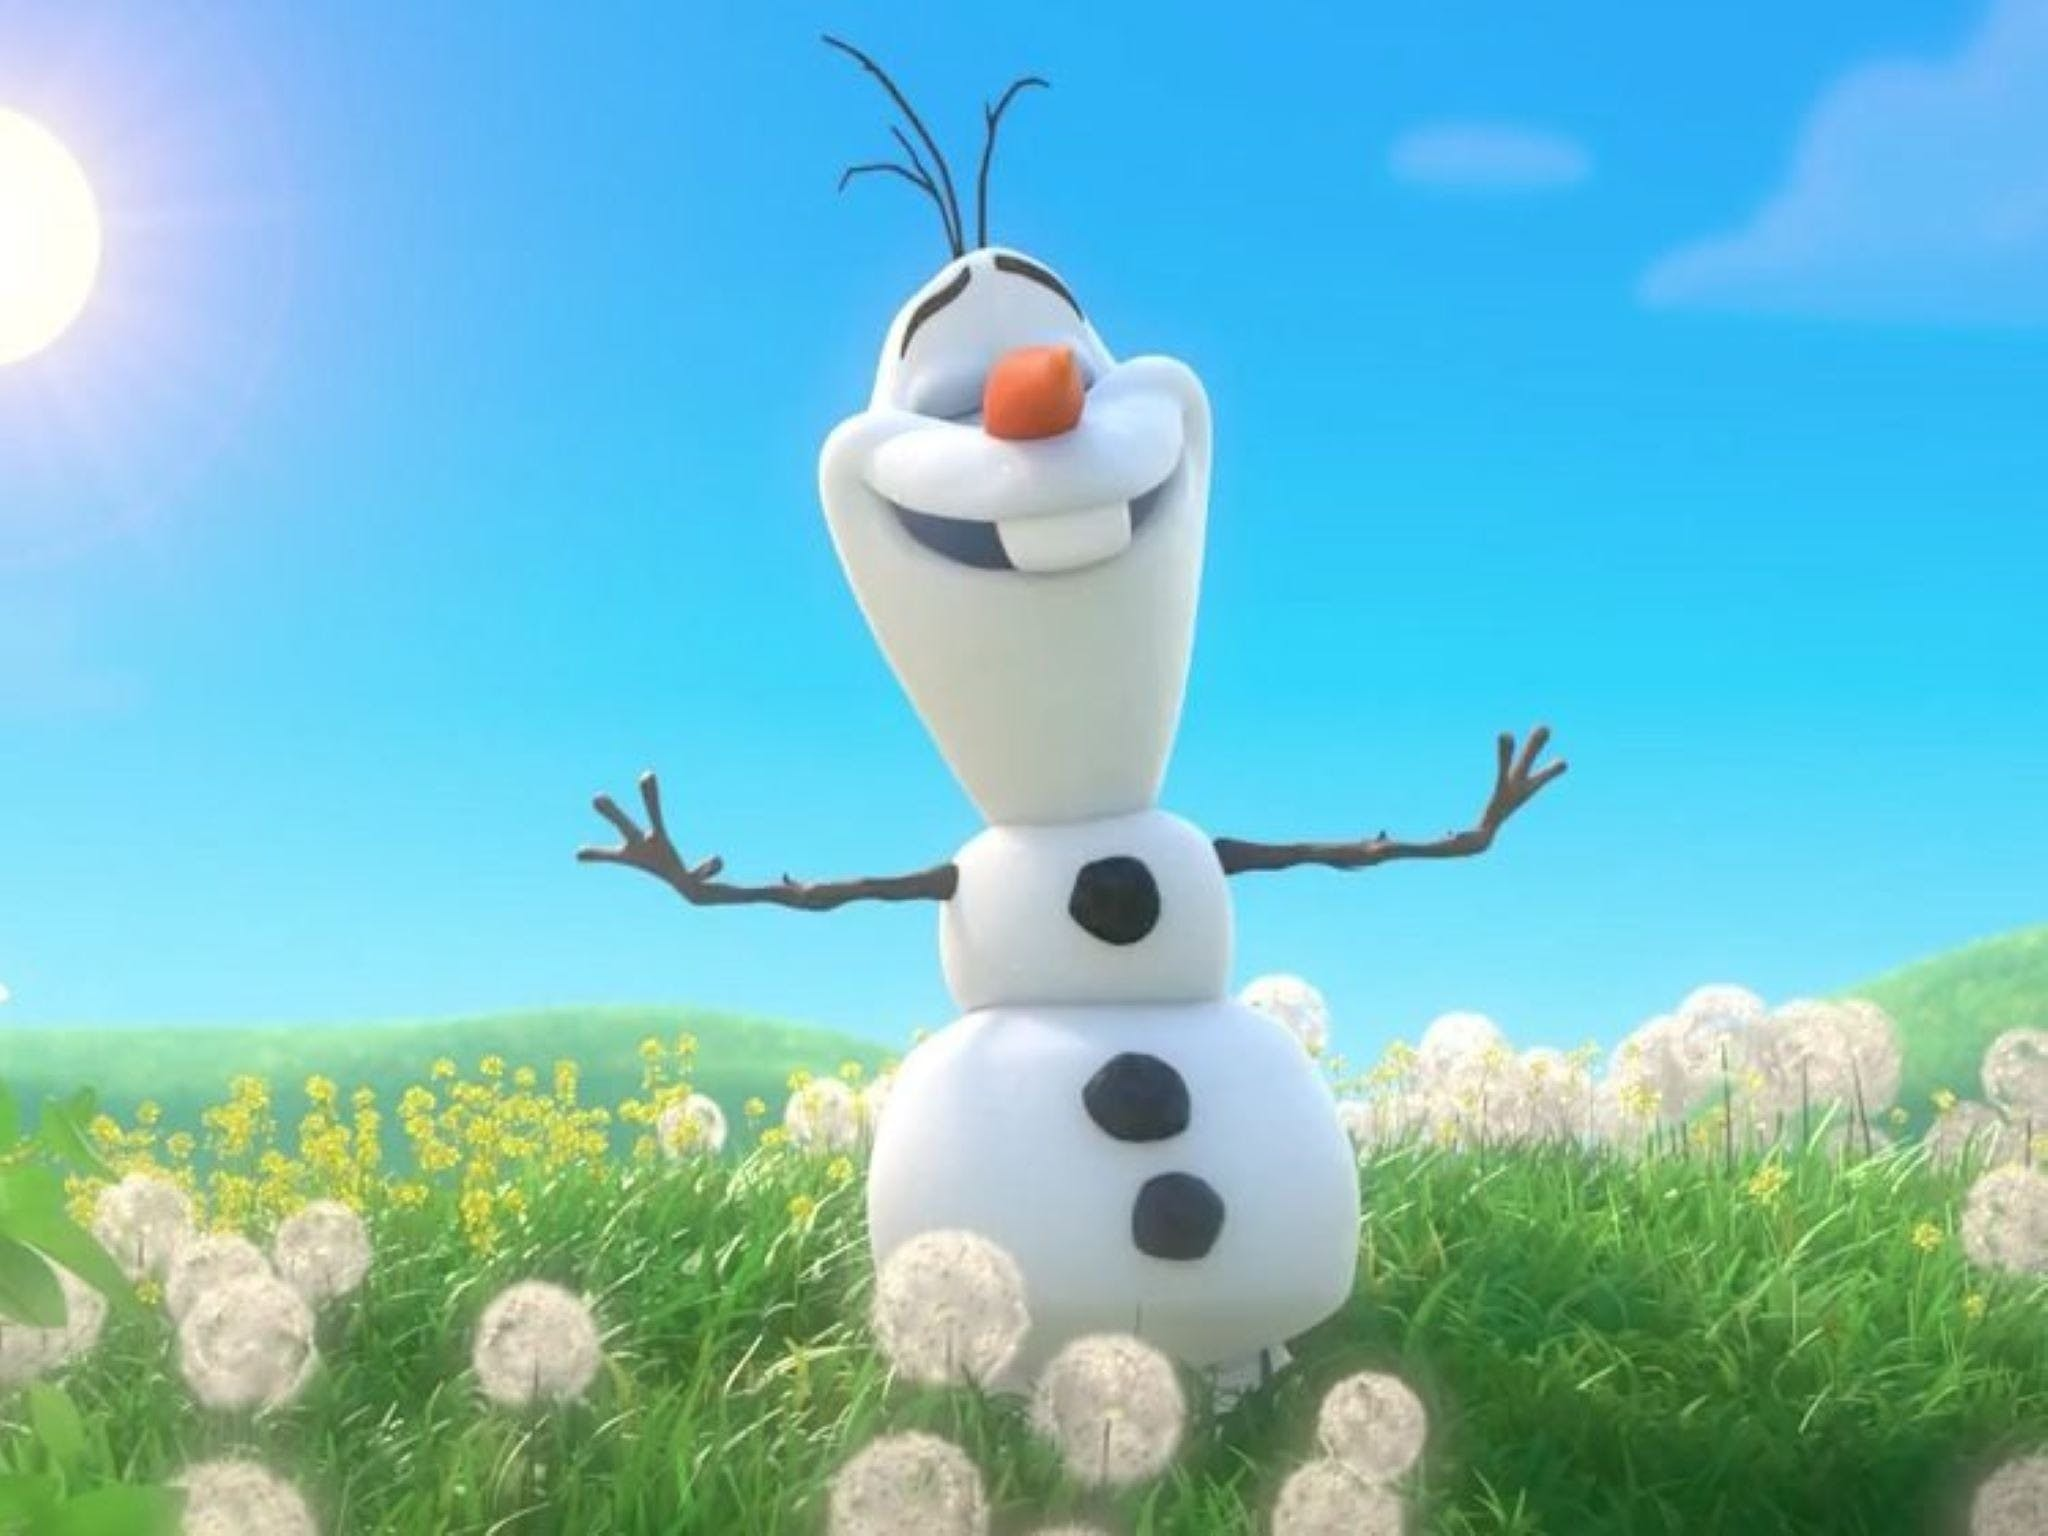 Meet Olaf from Frozen - Accommodation in Surfers Paradise